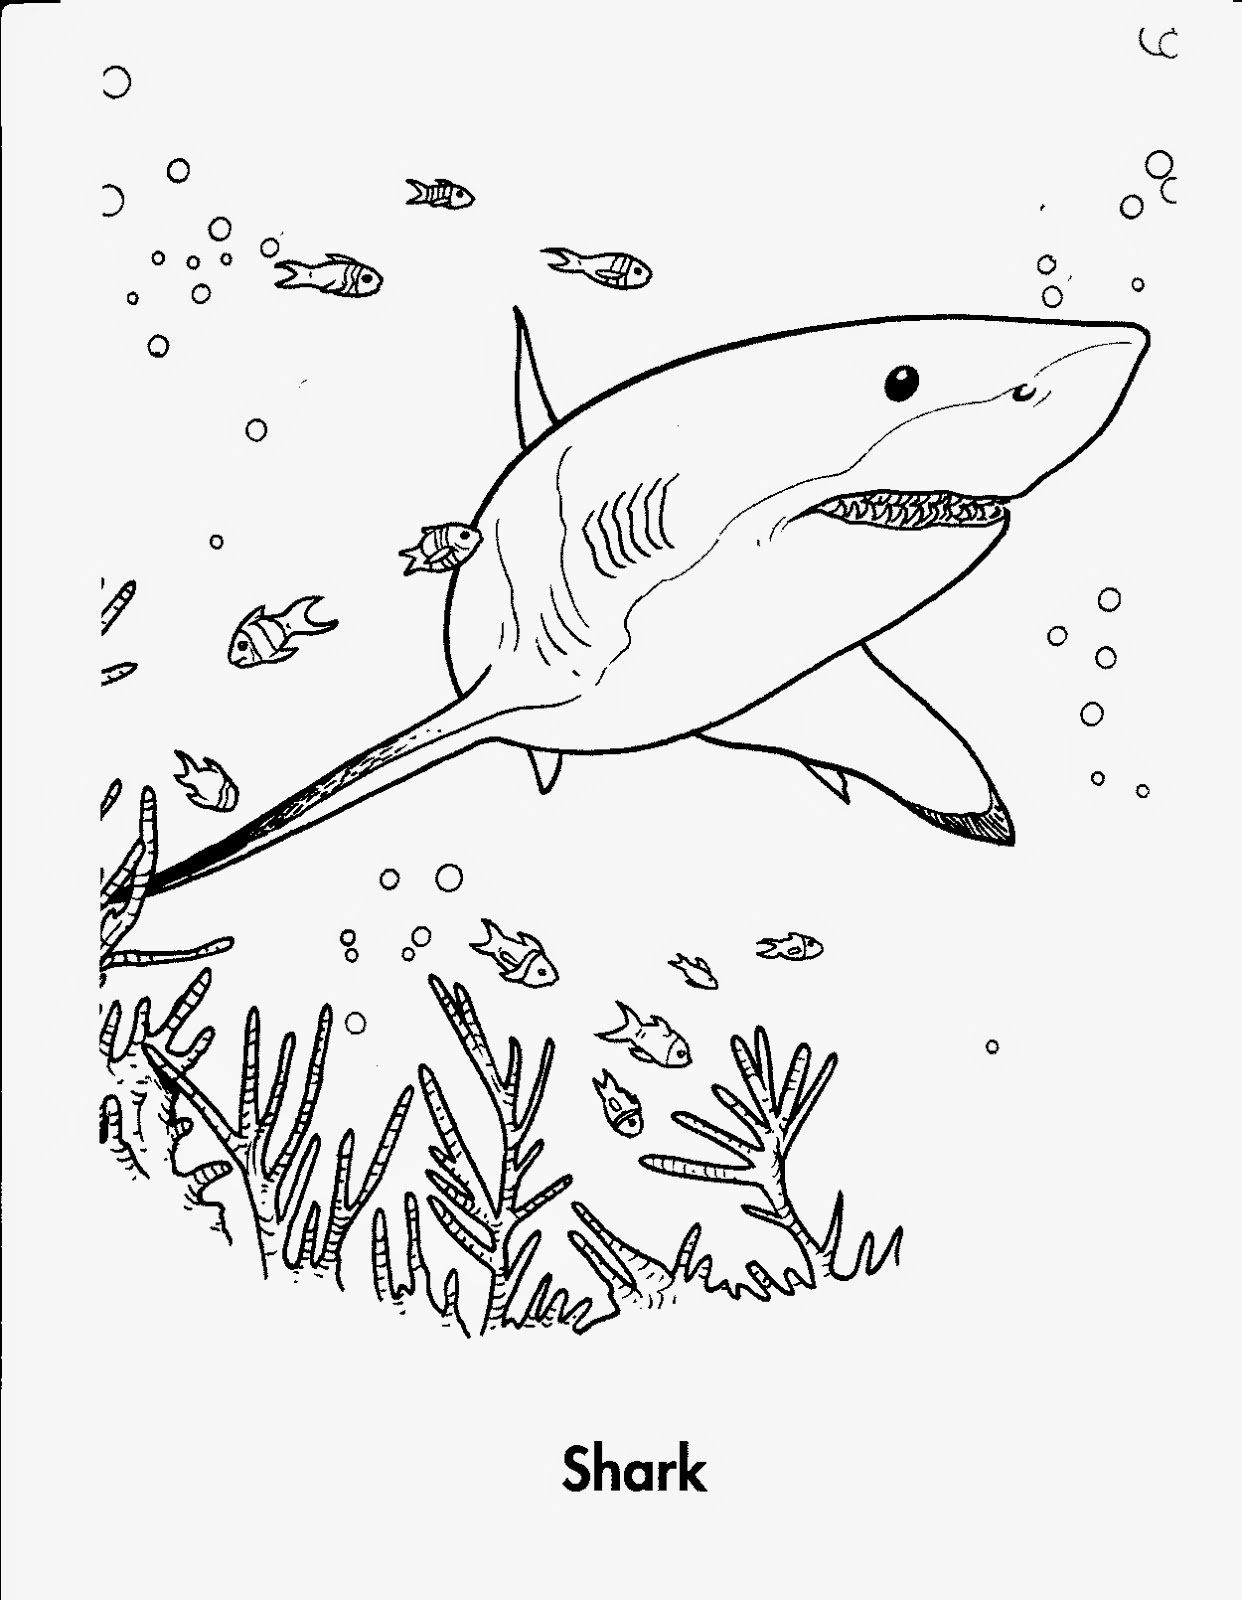 shark coloring pictures to print free printable shark coloring pages for kids animal place print pictures shark coloring to